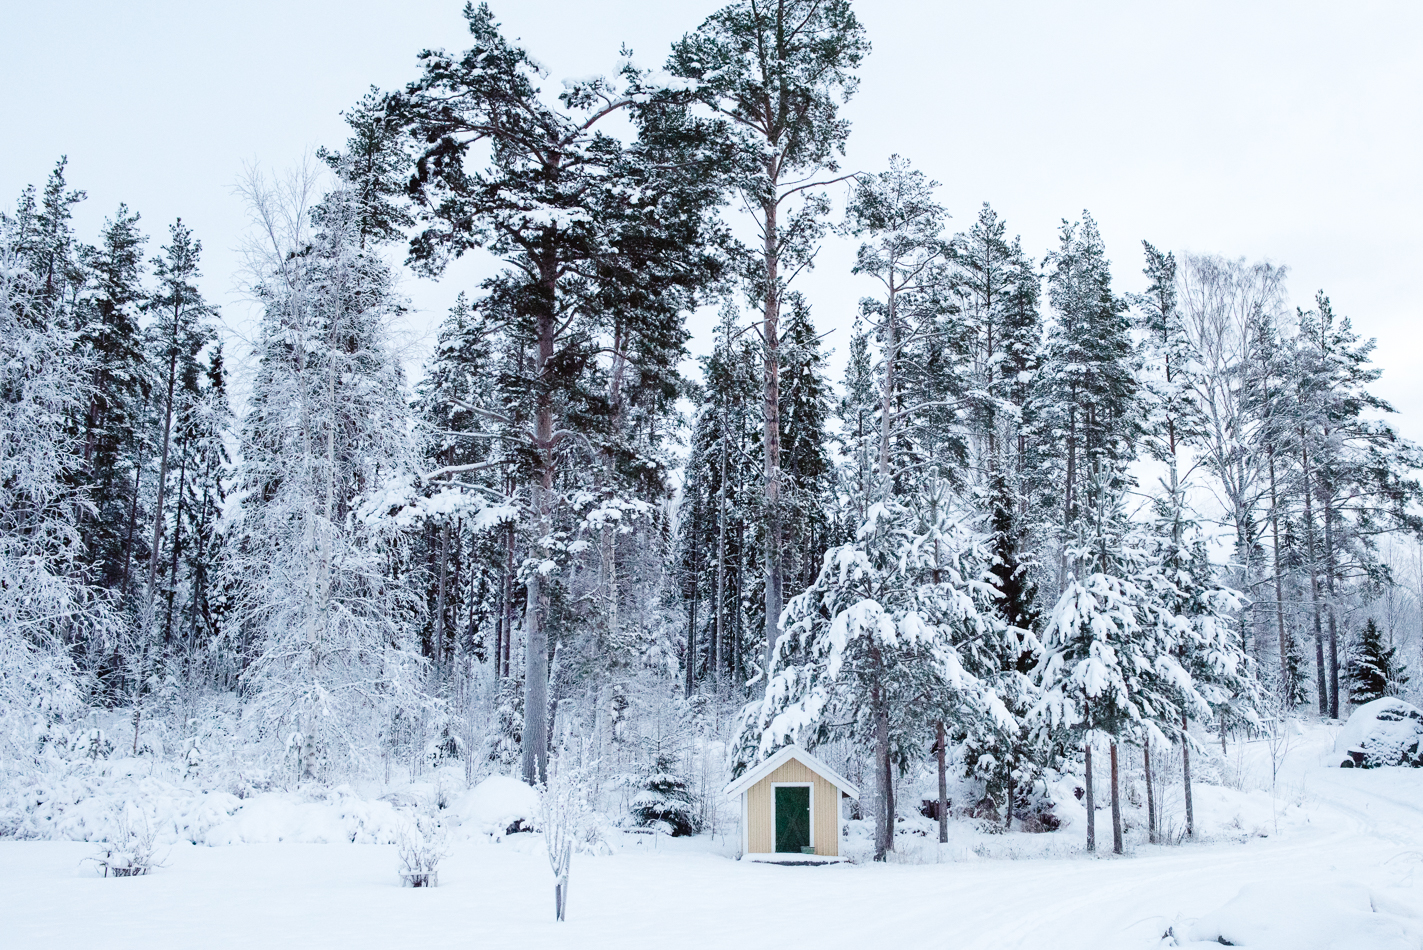 sweden-snow-blog-hannah-wilson-1